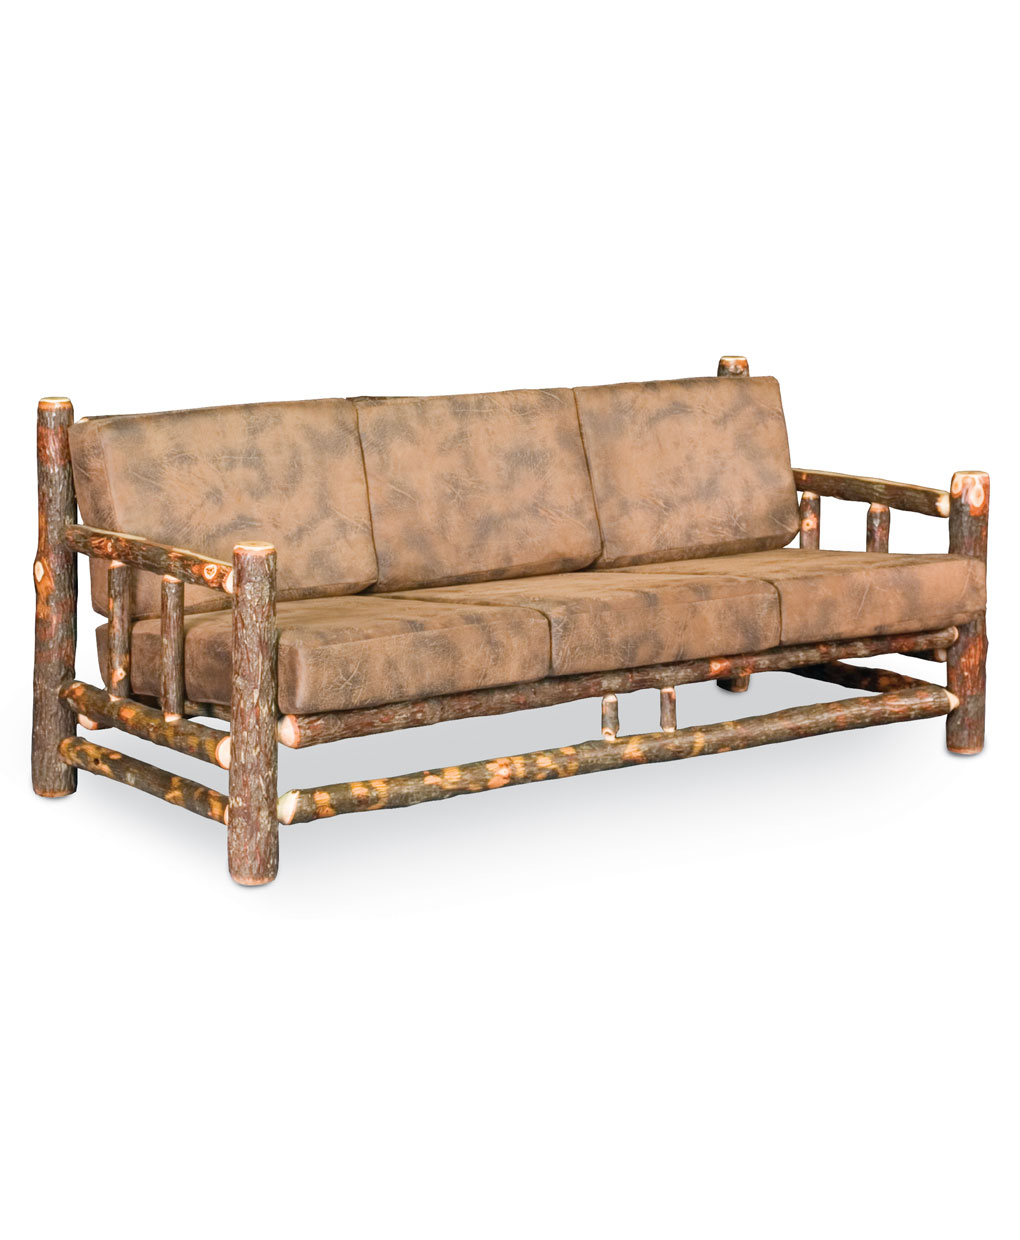 Lodge Sofa Rustic Upholstered Sofa Cabin Style Lodge